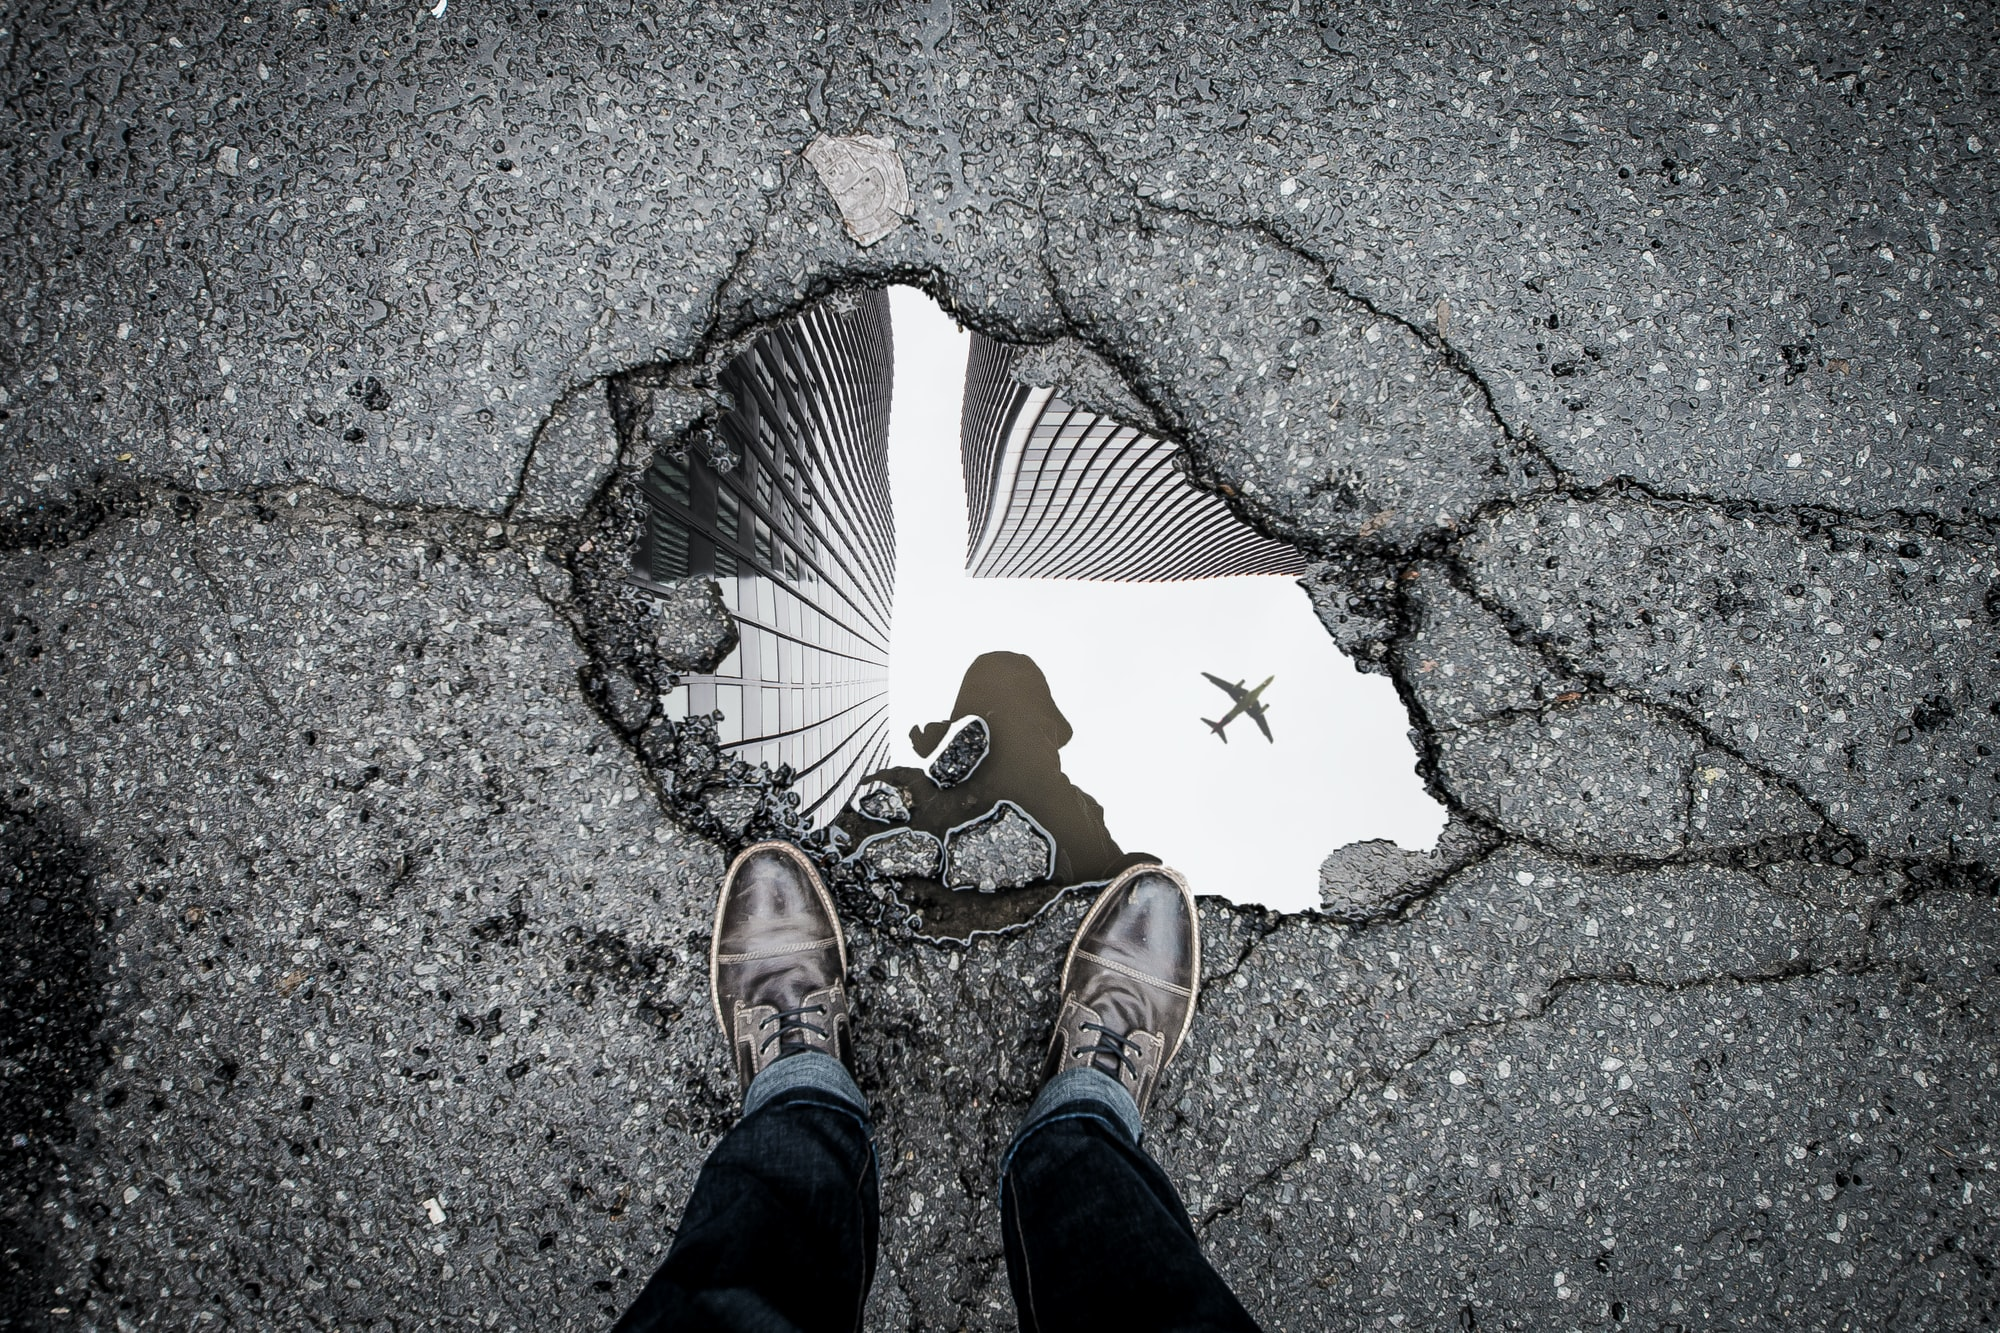 A shot of a puddle, which is reflecting tall buildings and an airplane.